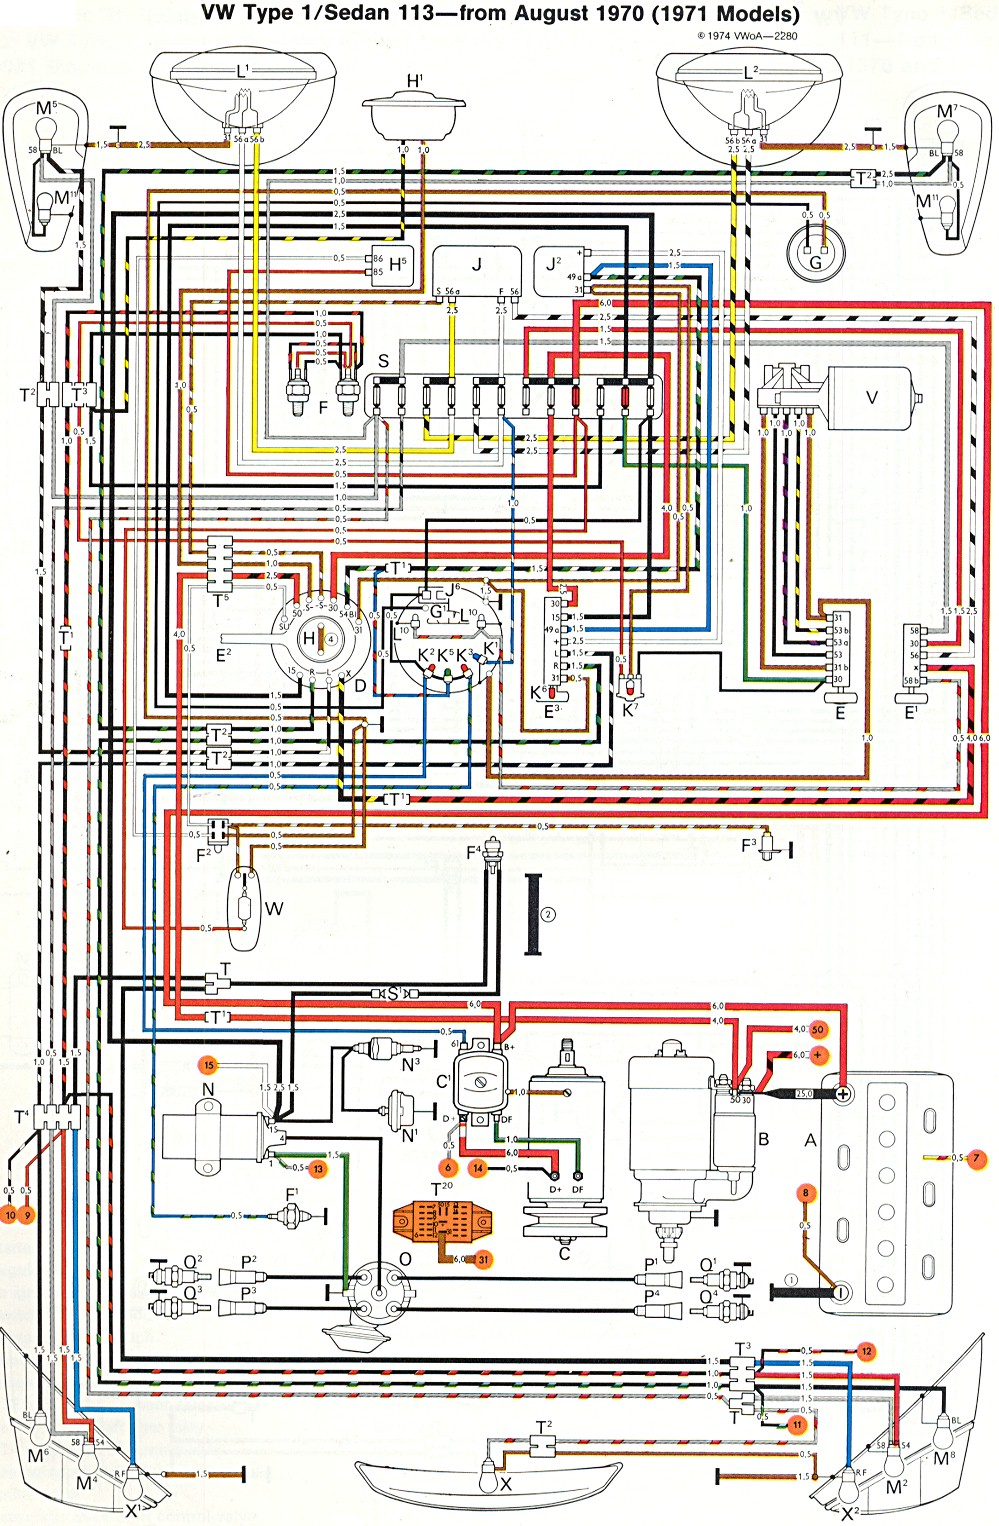 bug_super_71 1971 super beetle wiring diagram thegoldenbug com vw beetle wiring diagram at bakdesigns.co